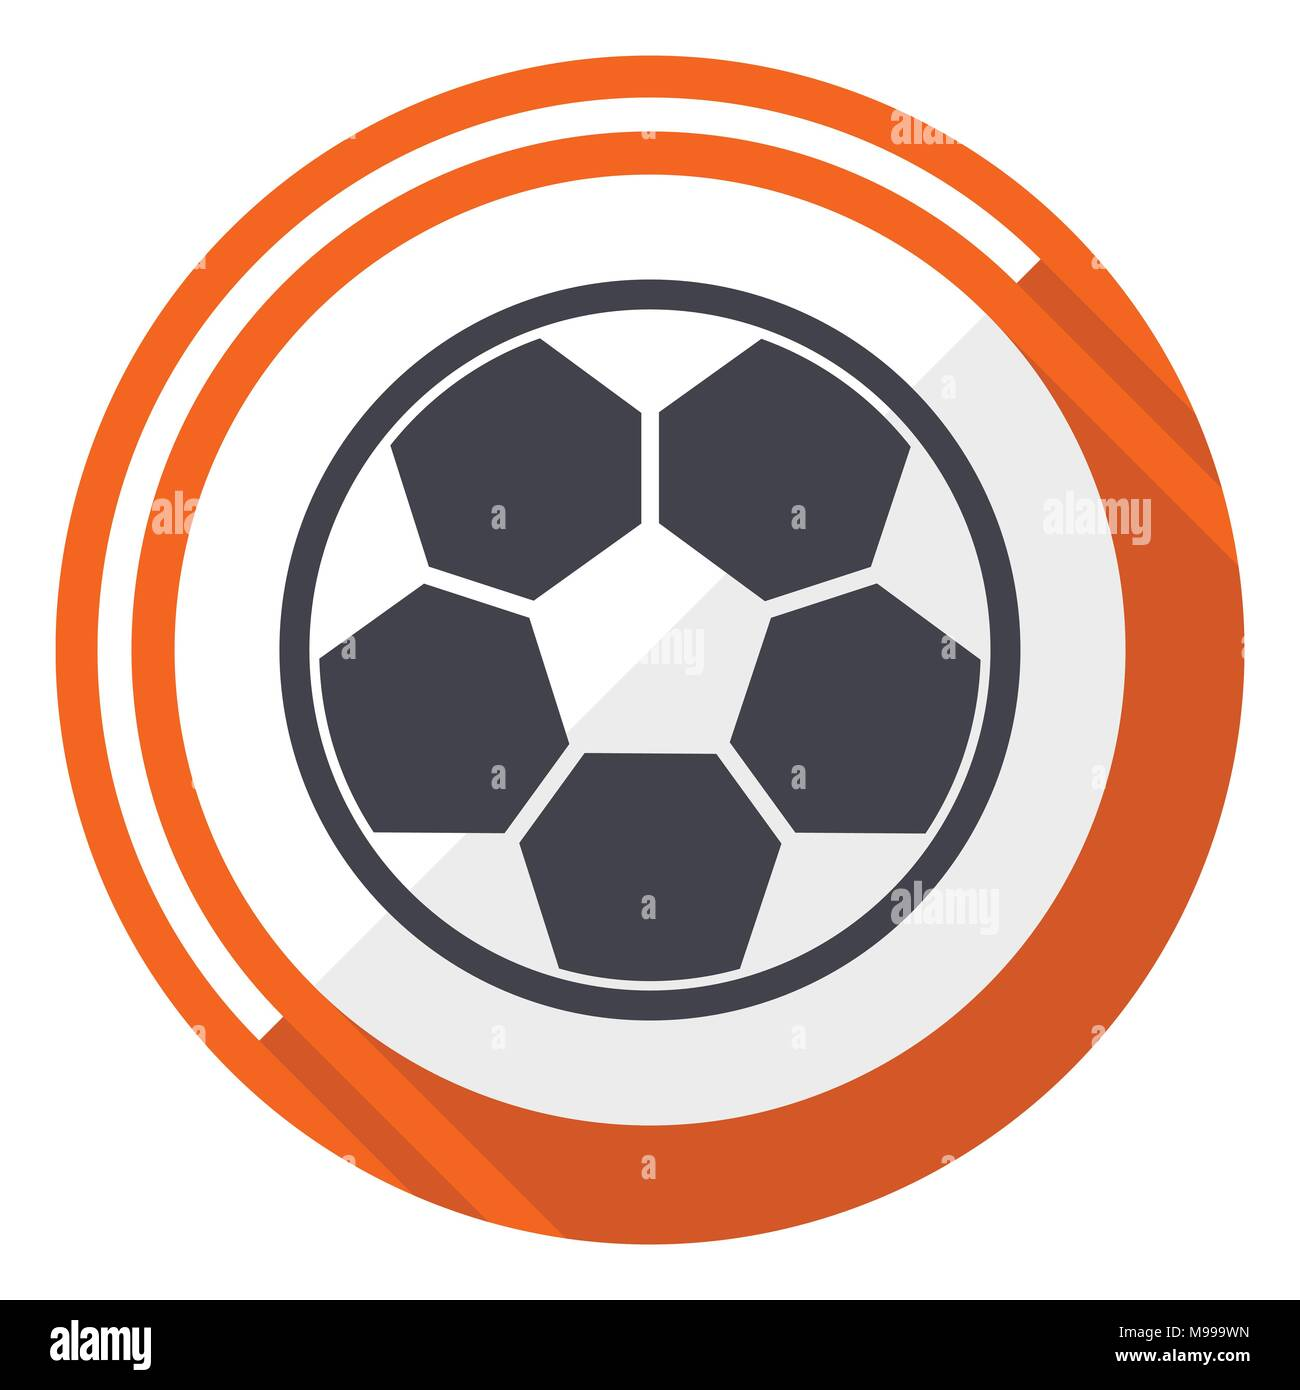 Soccer flat design vector web icon. Round orange internet button isolated on white background. - Stock Vector